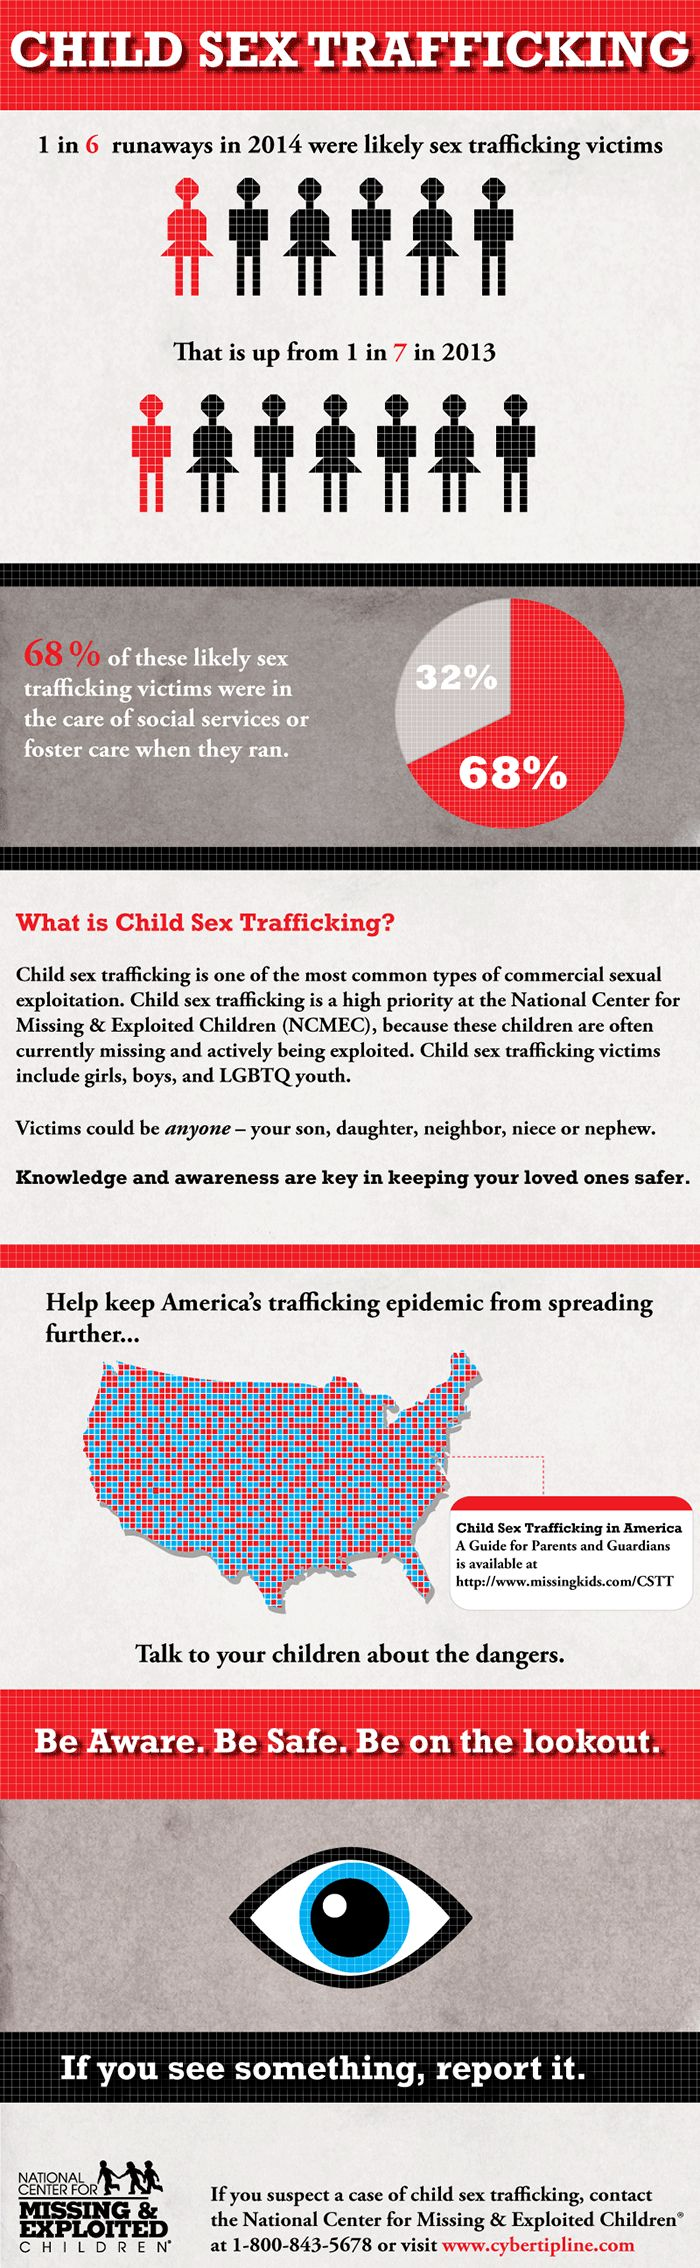 8 Signs to Detect Child Sex Trafficking When You Travel  (droppingfbombs.com / #fbomb211)